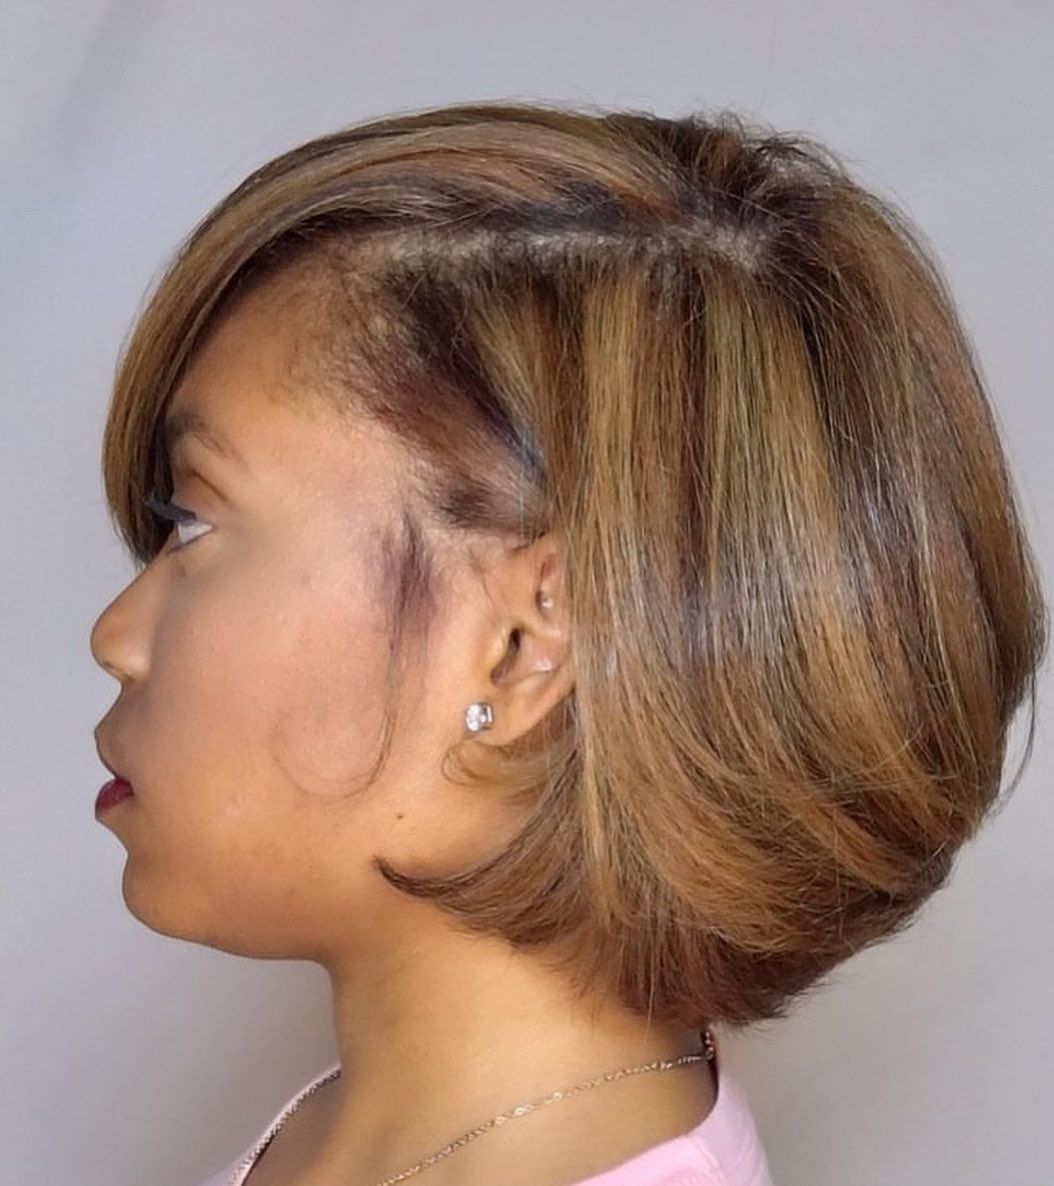 100 Short Haircut Styles for Over 50 Women in 2021 3b18378f0fb5356c31bca7500e921fd1